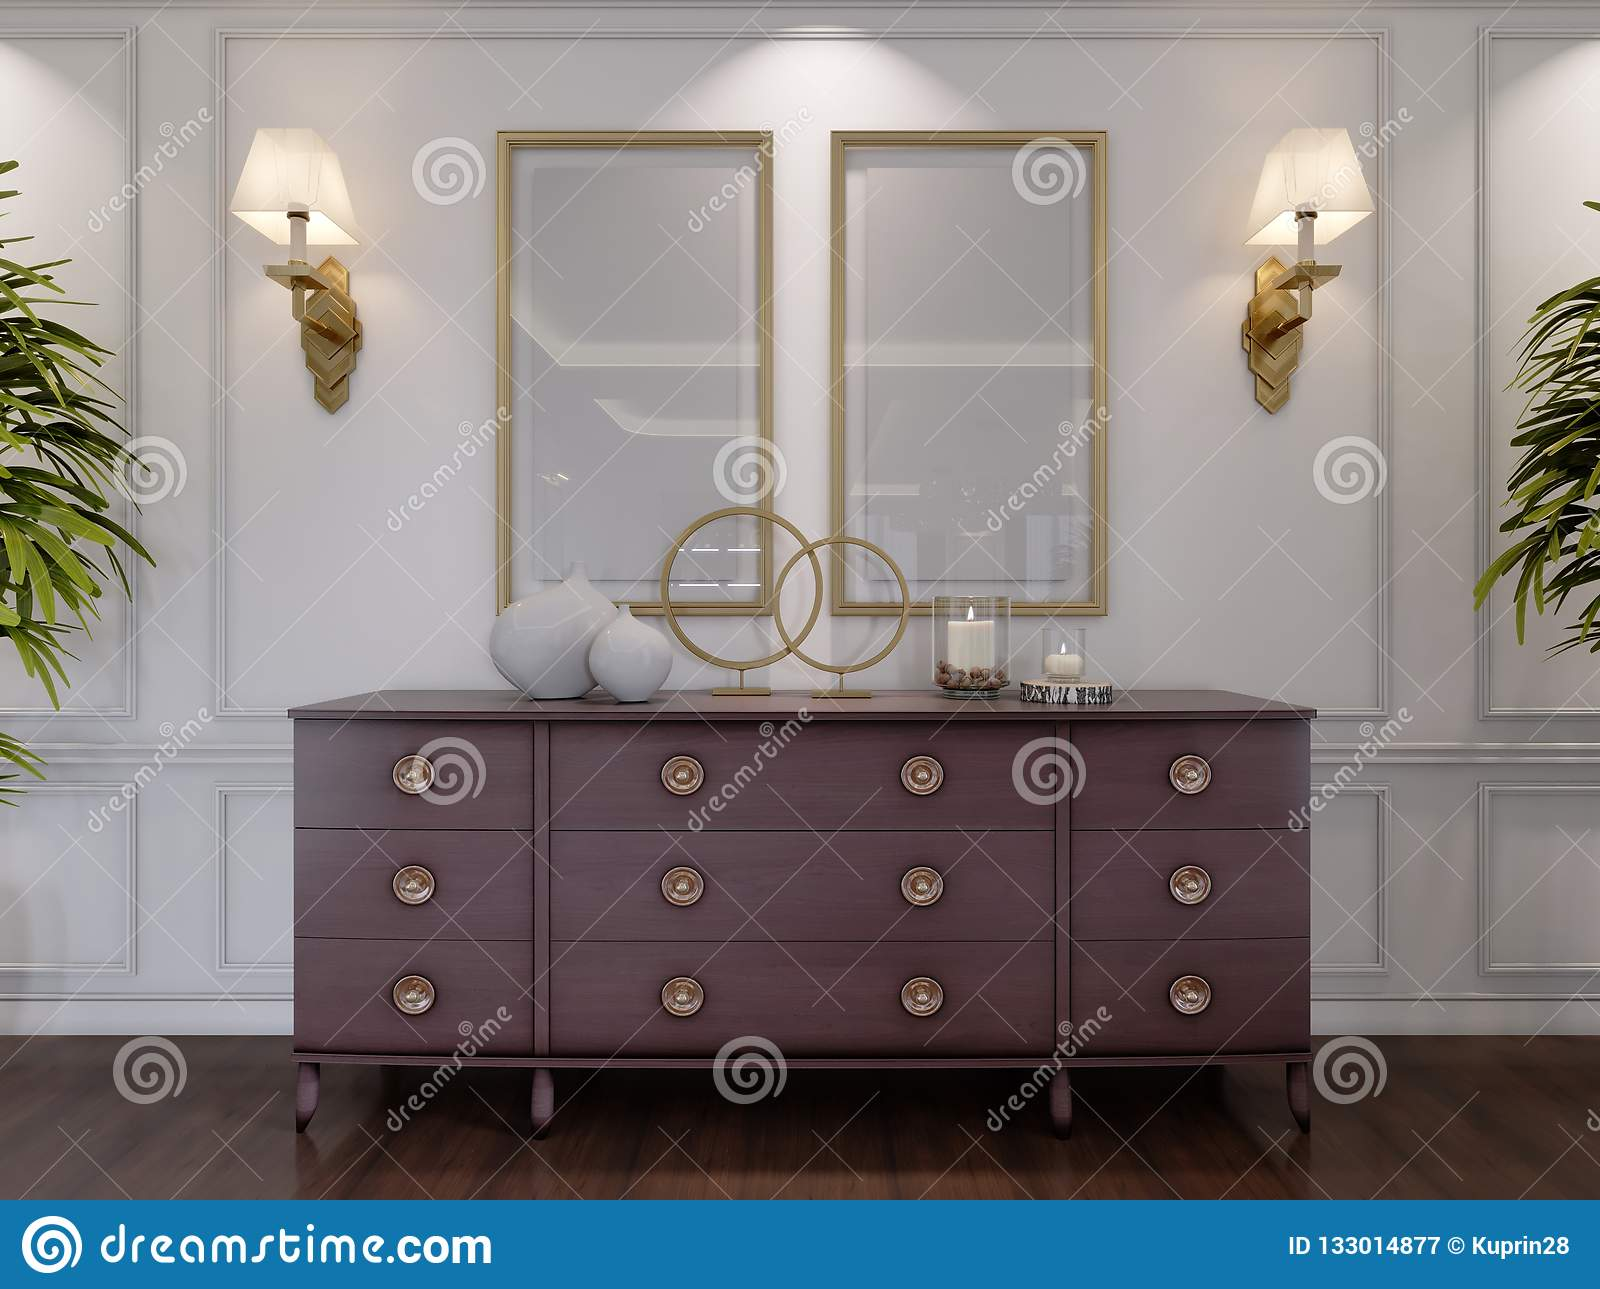 Classic Wooden Chest Of Drawers With Sliding Cabinets And ...